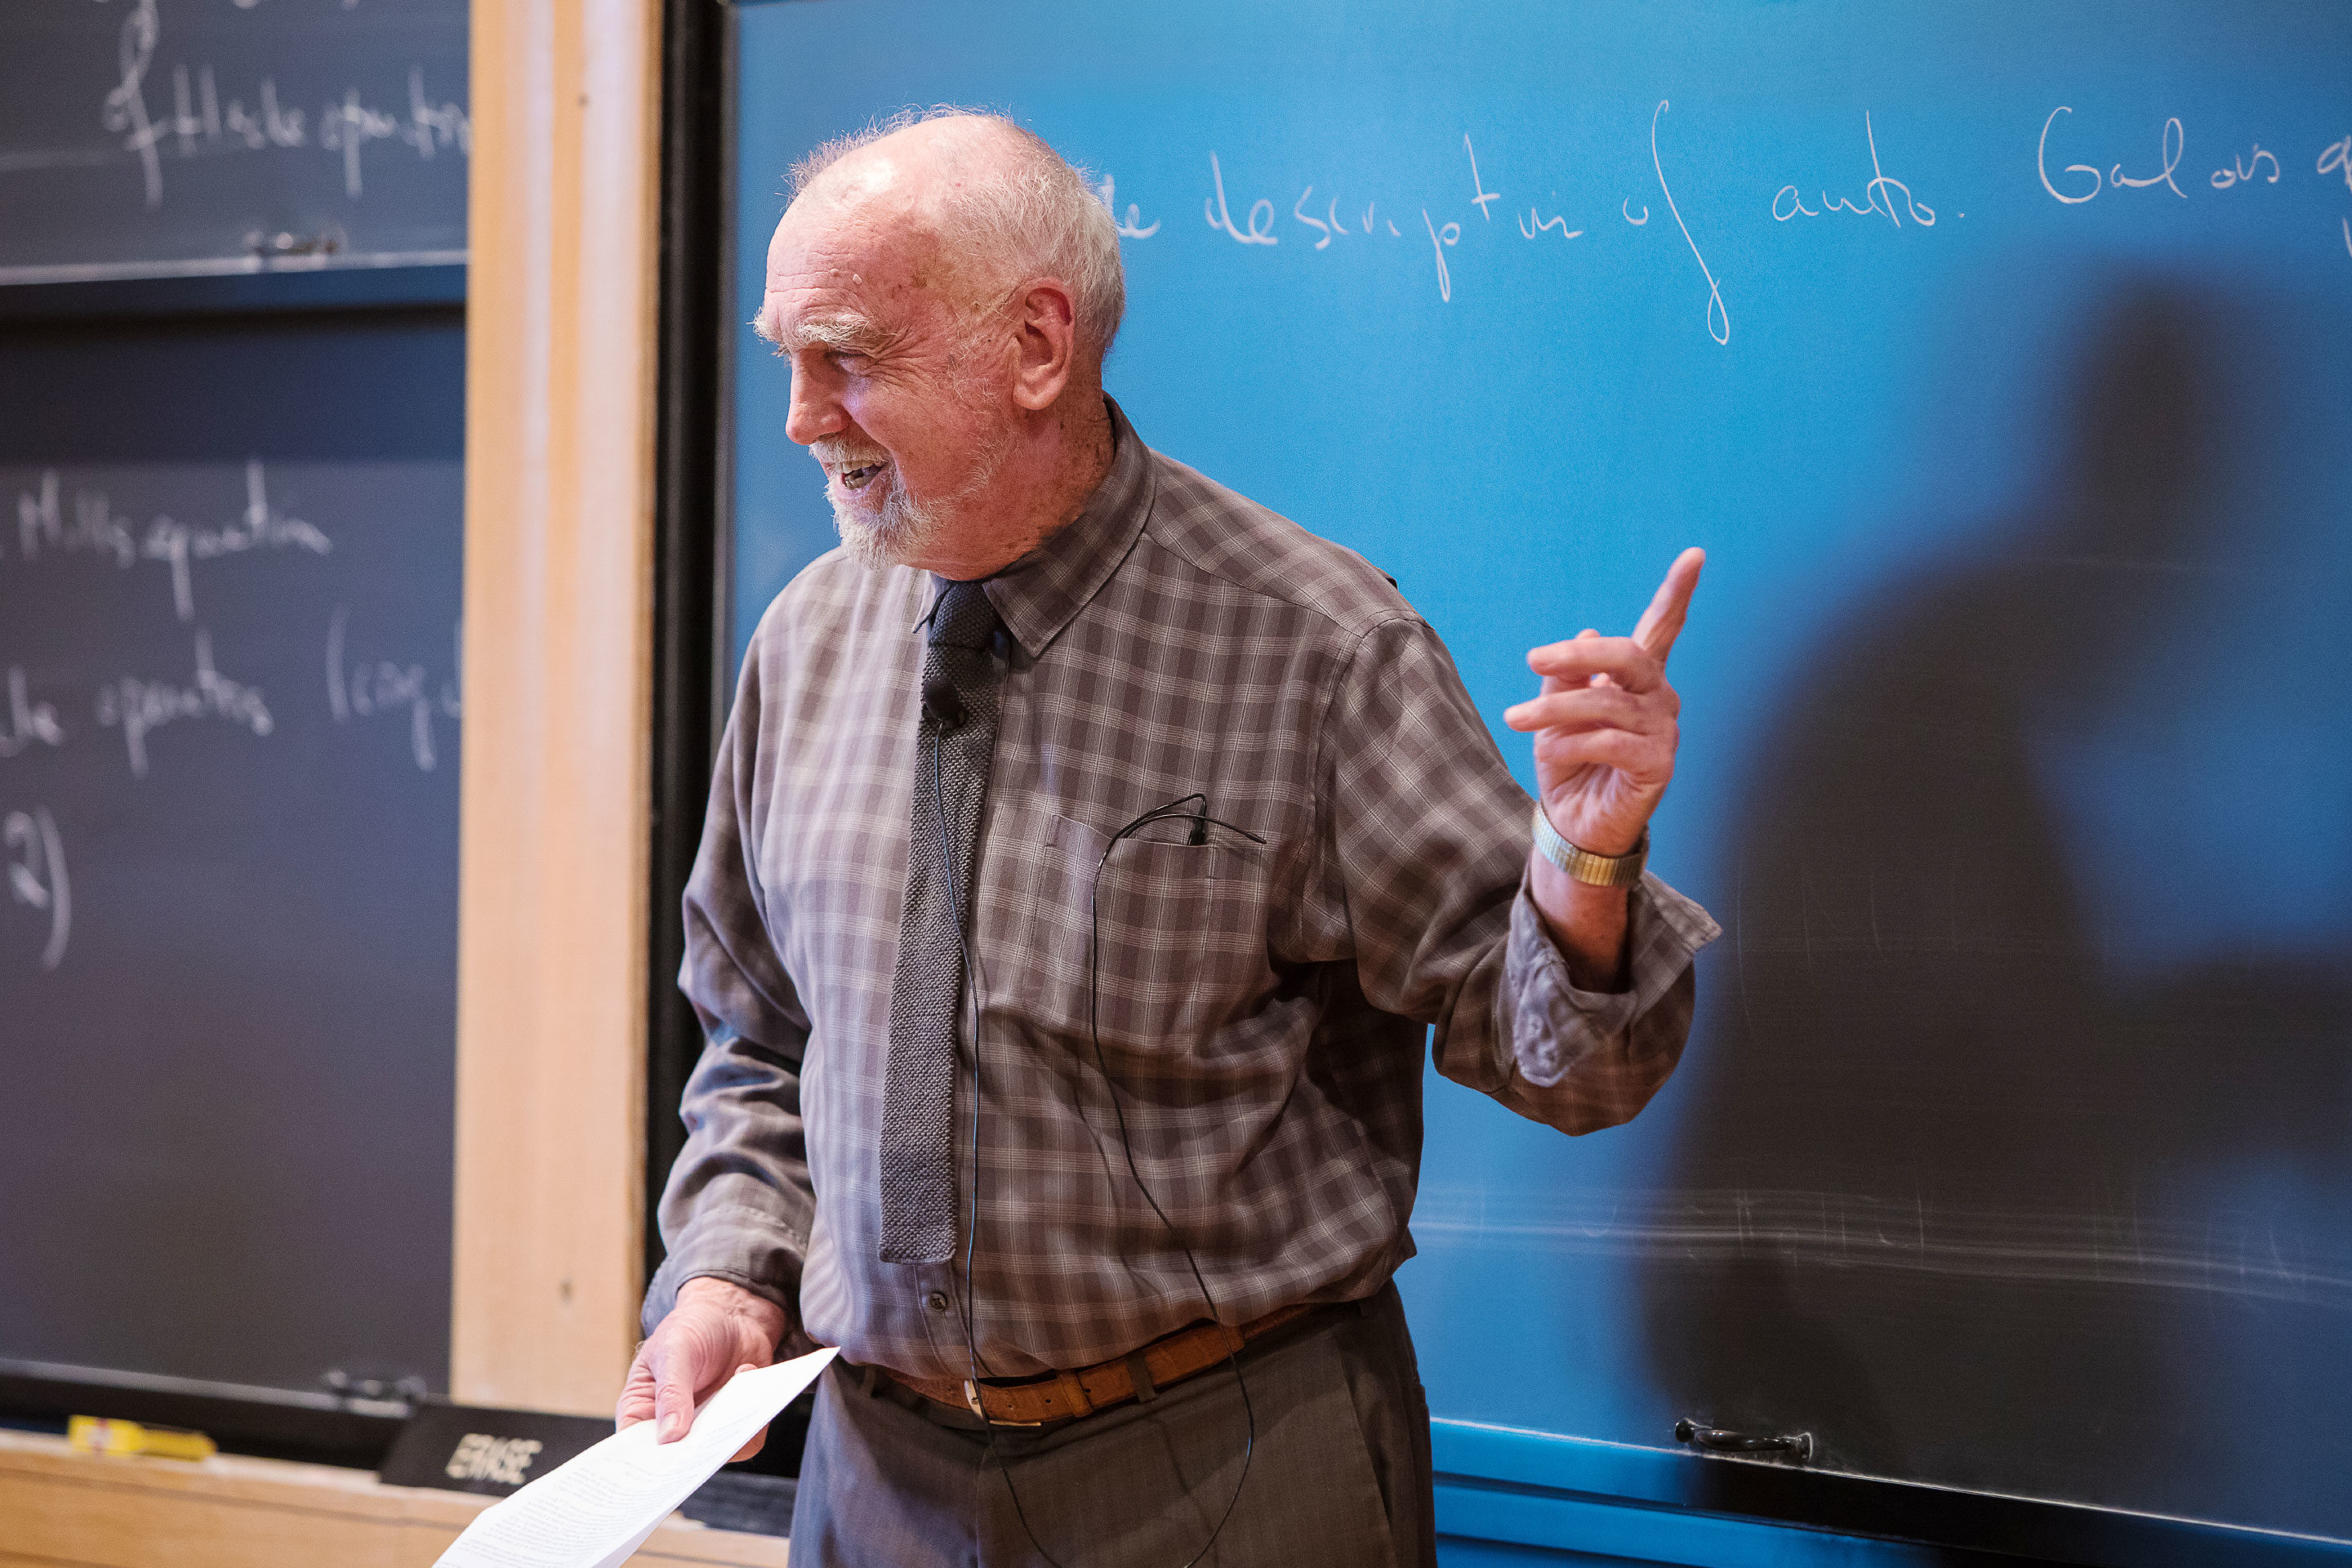 Robert Langlands, Mathematical Visionary, Wins the Abel Prize